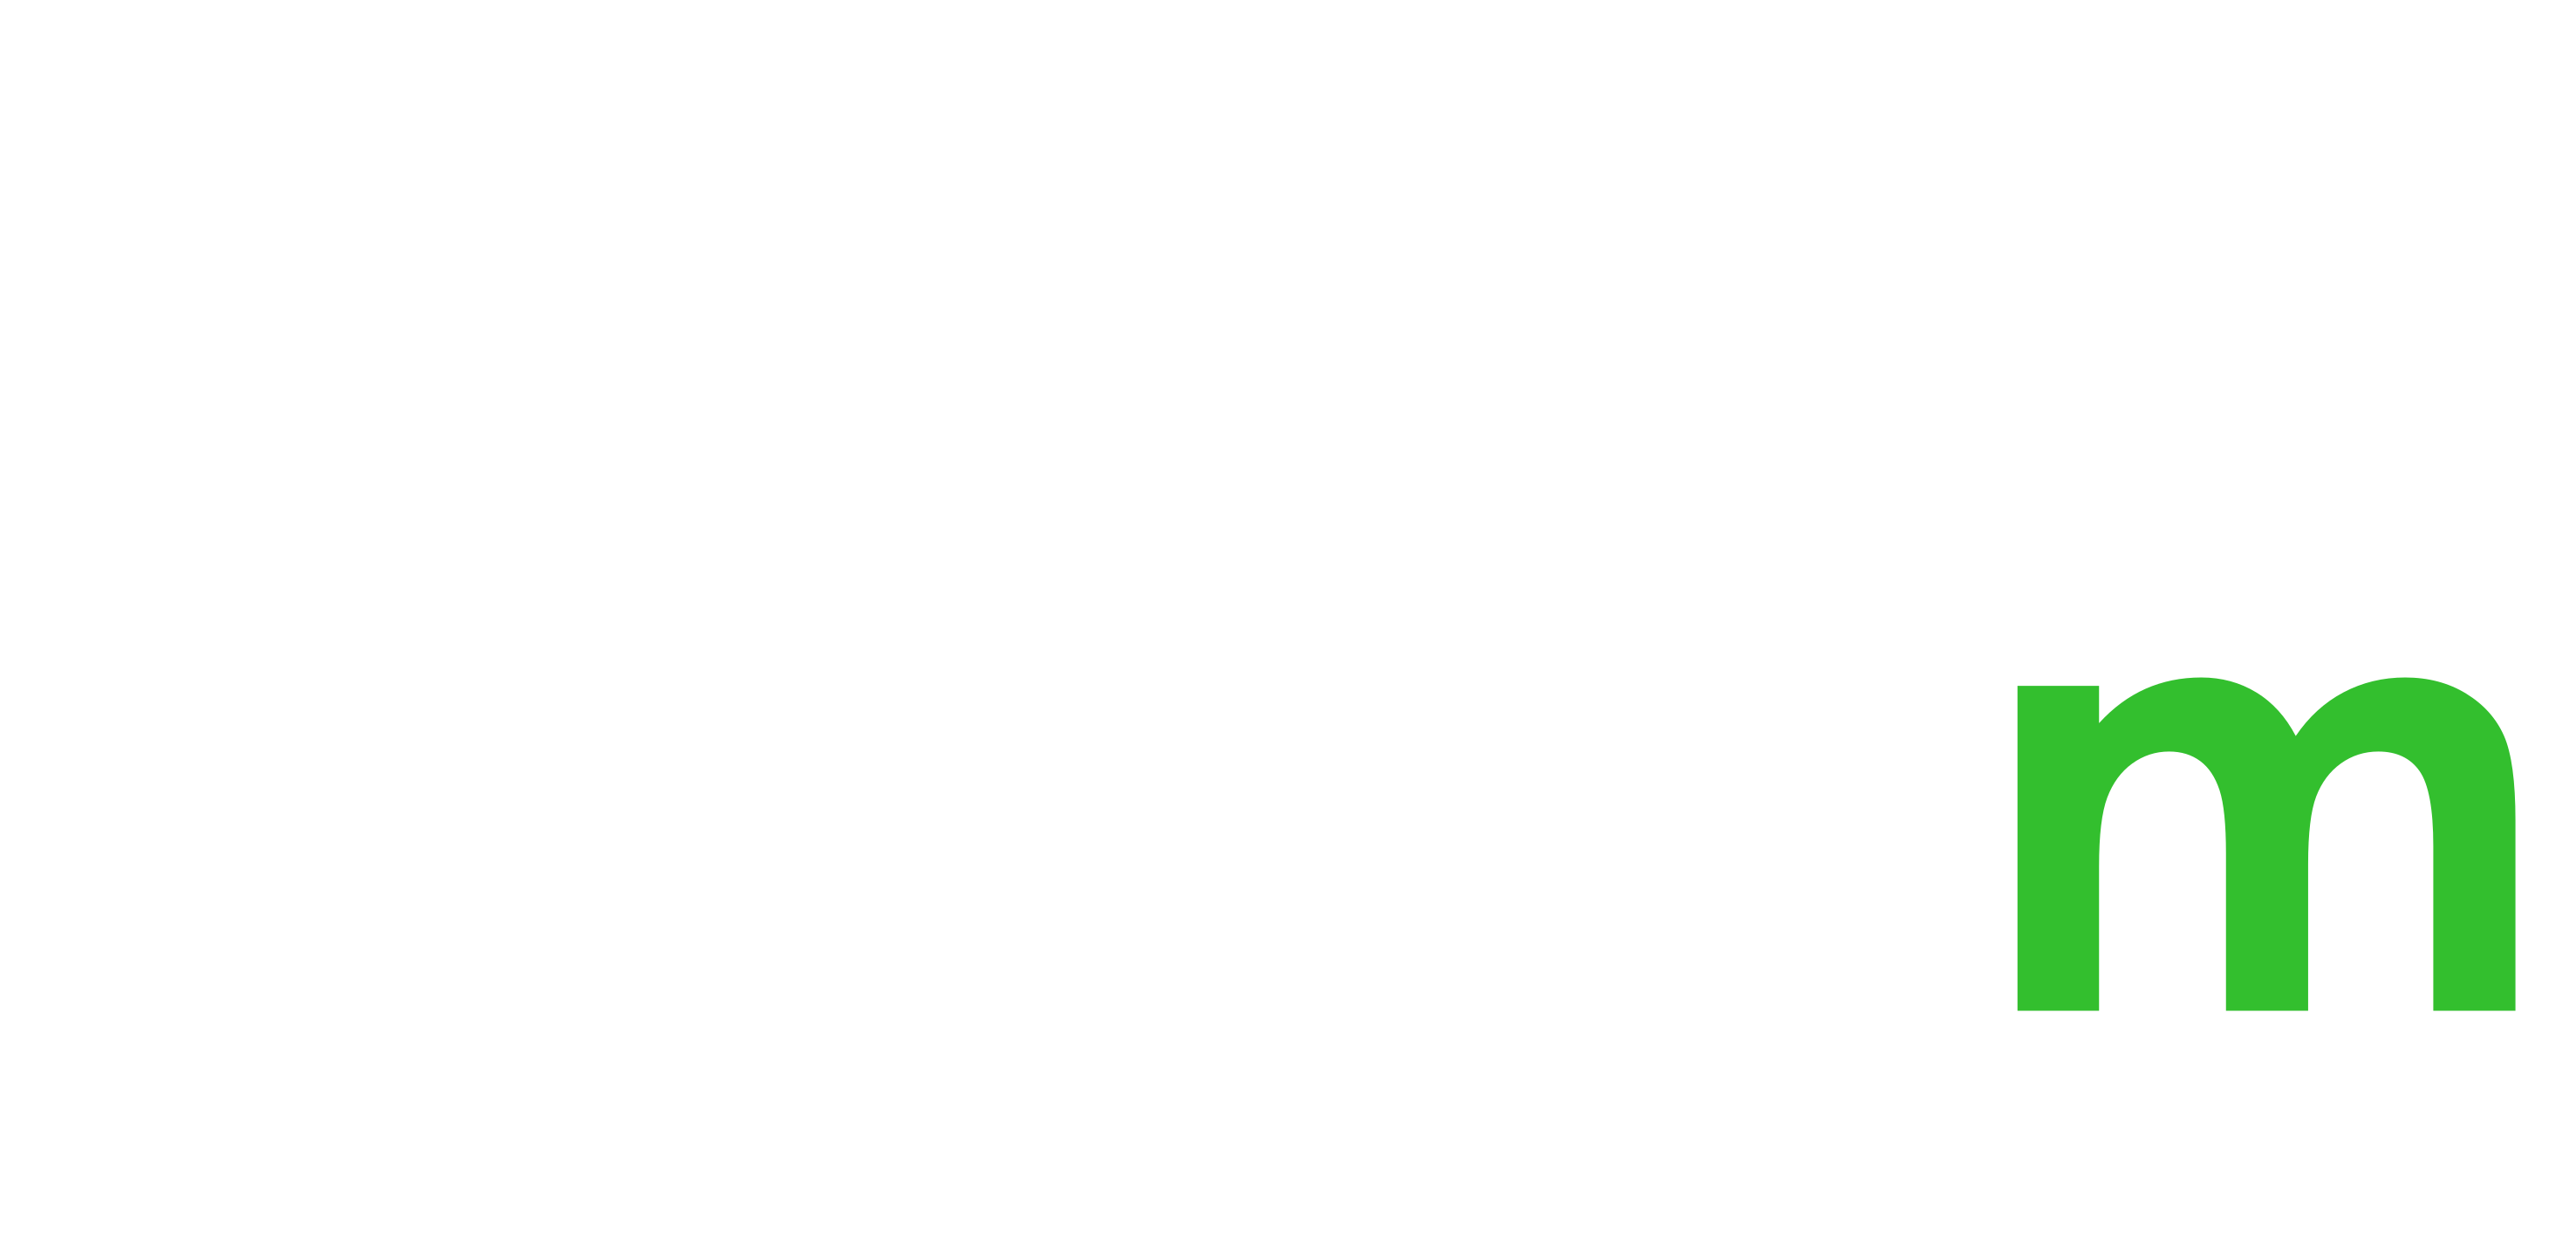 Kvartam football freestlye logó